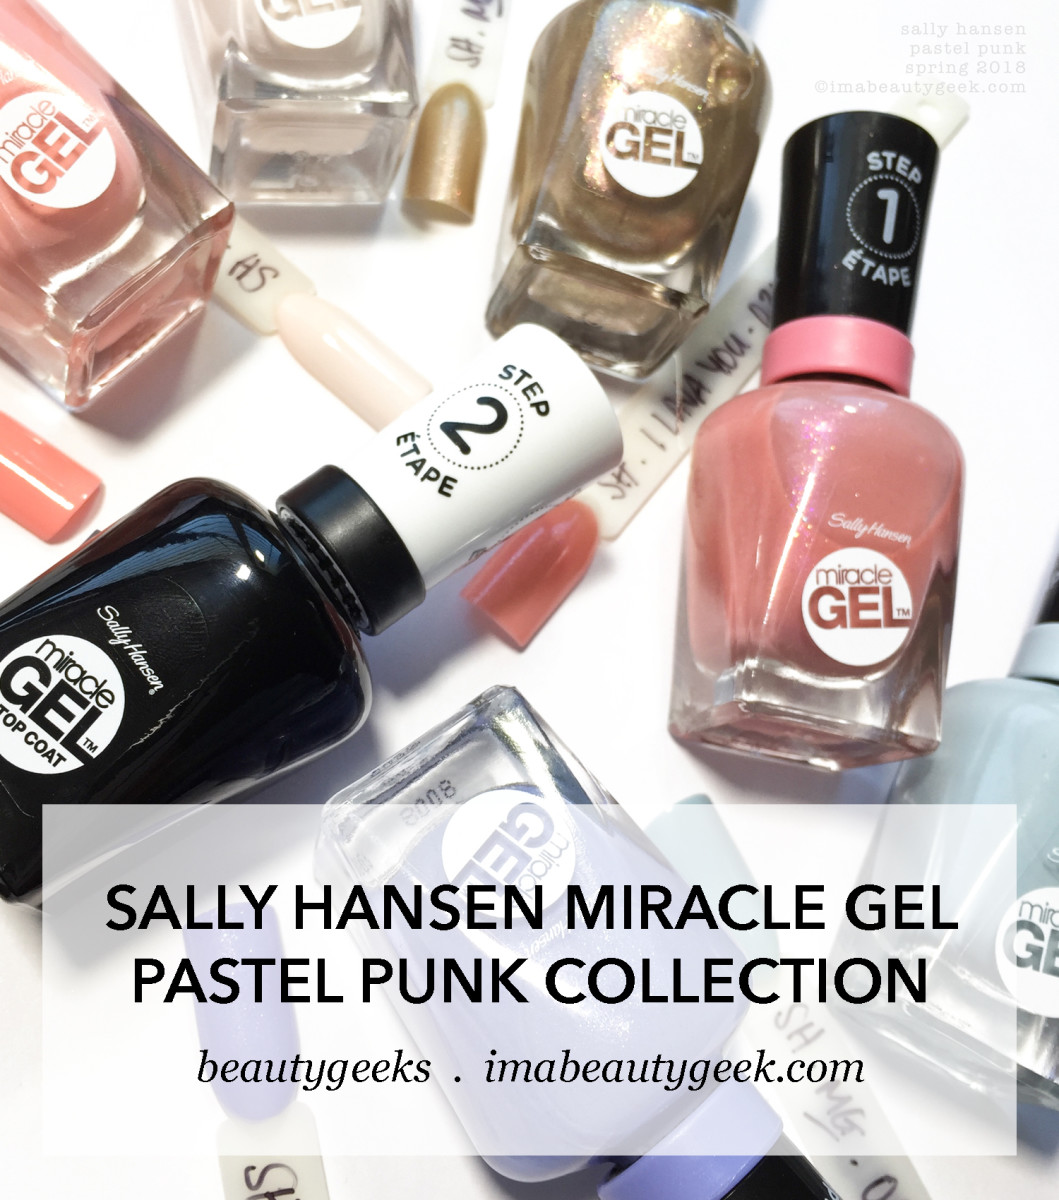 Sally Hansen Pastel Punk Collection 2018